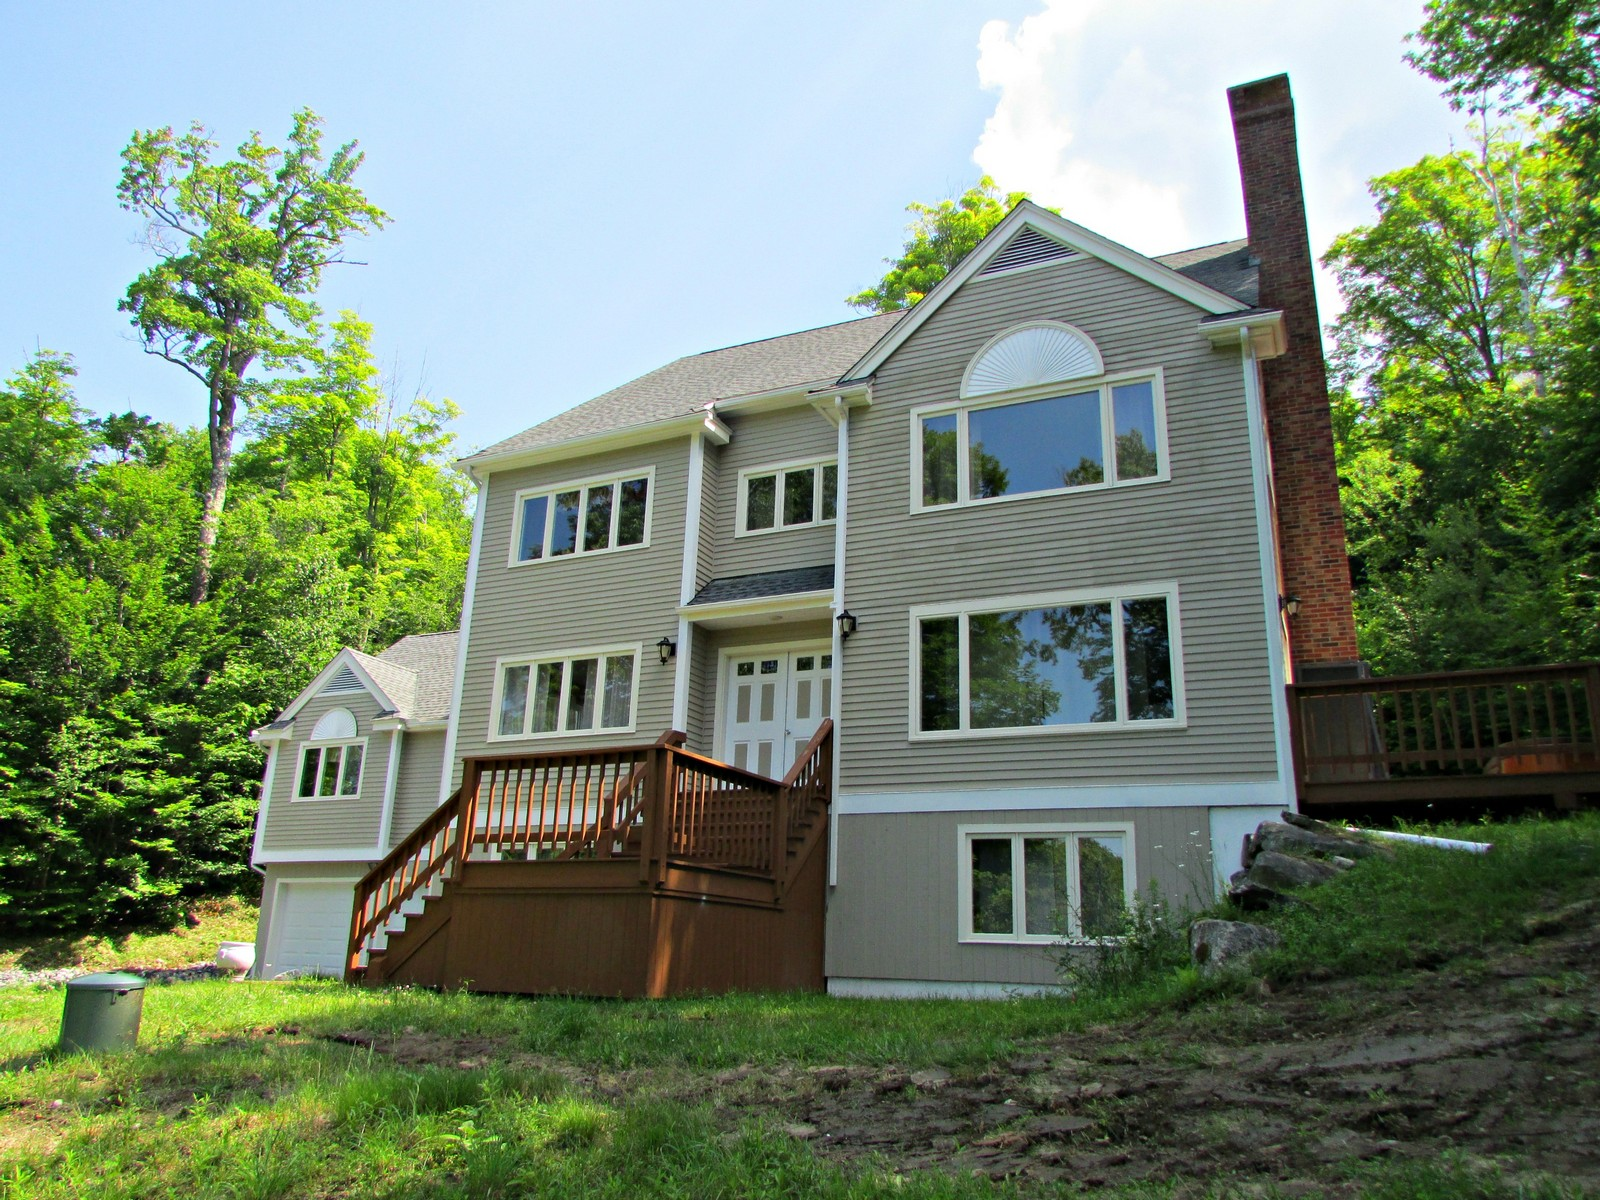 Casa Unifamiliar por un Venta en Stratton Resort Home 10 Indian Brush Rd Winhall, Vermont, 05340 Estados Unidos